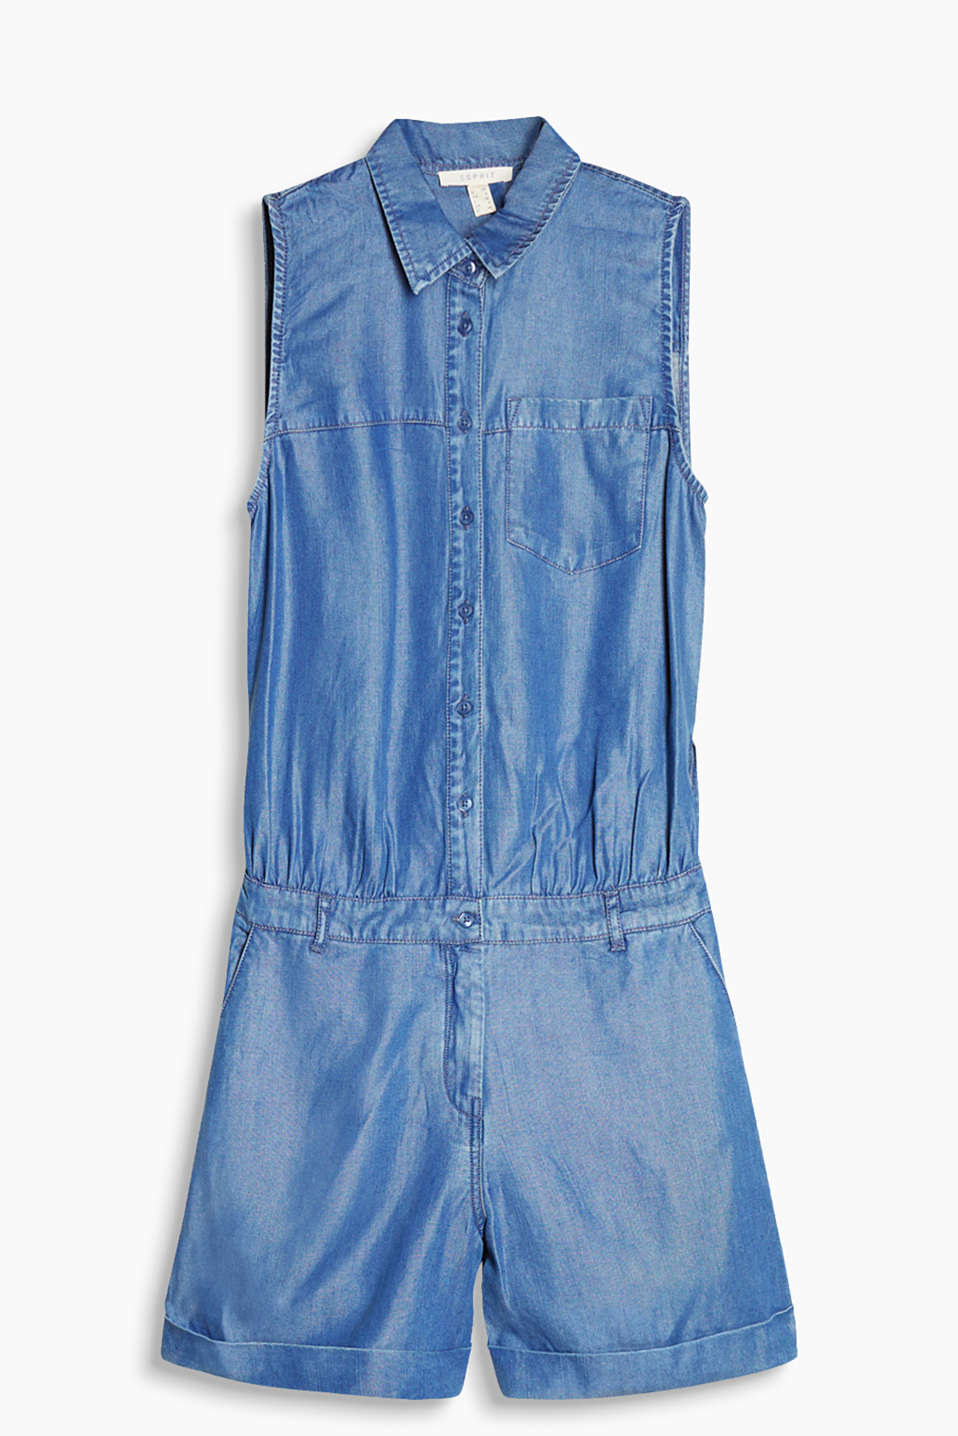 Flowing denim-look jumpsuit with a divided back section